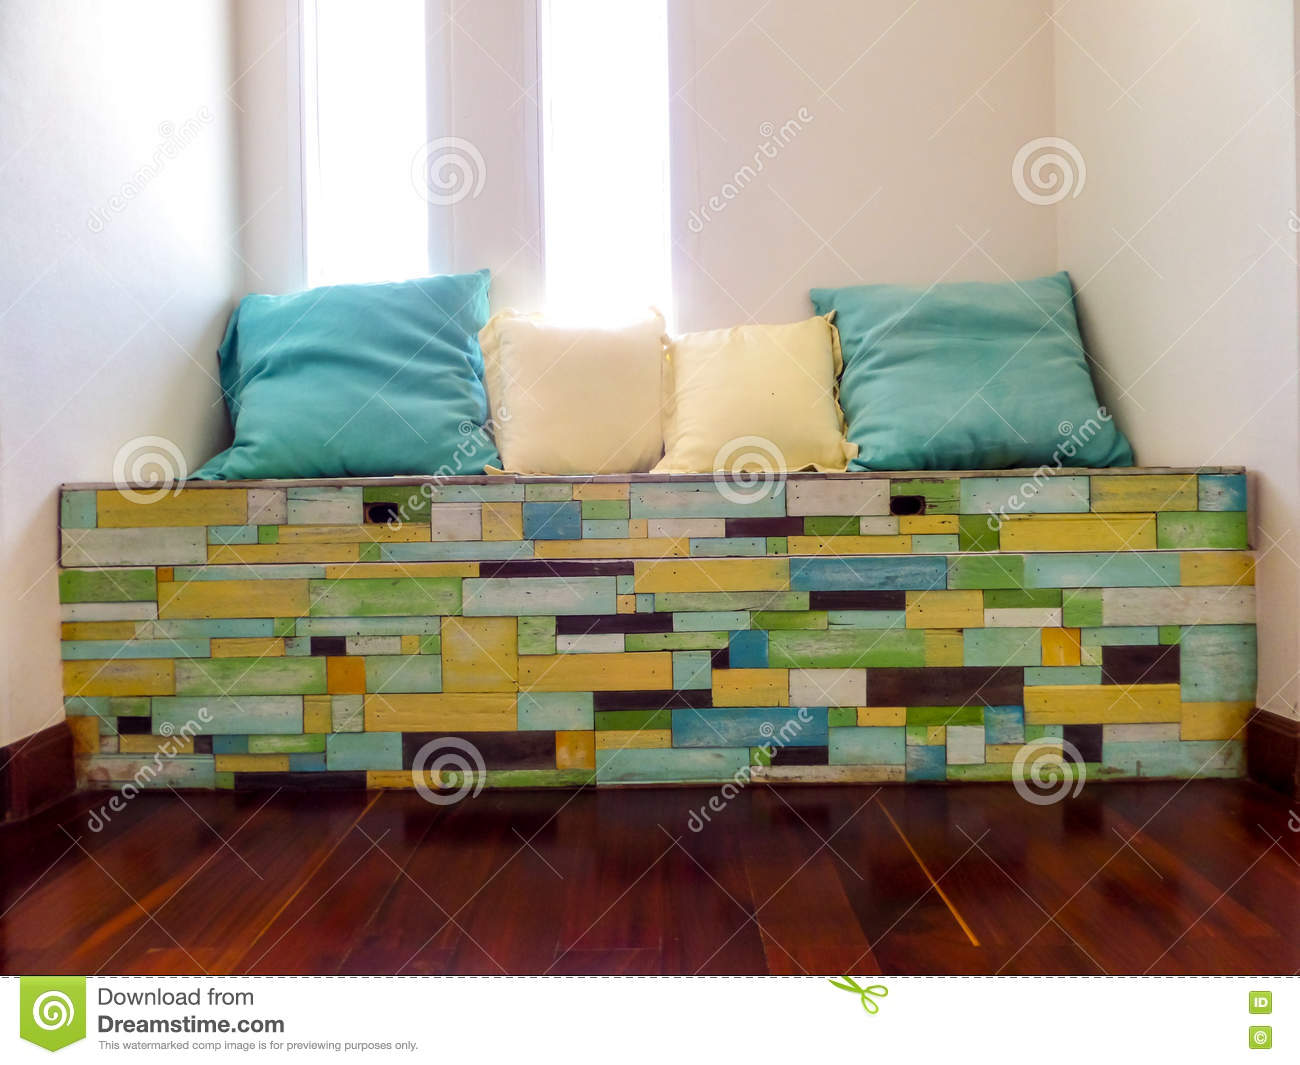 Groovy Pillows On Wood Pieces Bench Random Fancy Color On Surface Beatyapartments Chair Design Images Beatyapartmentscom